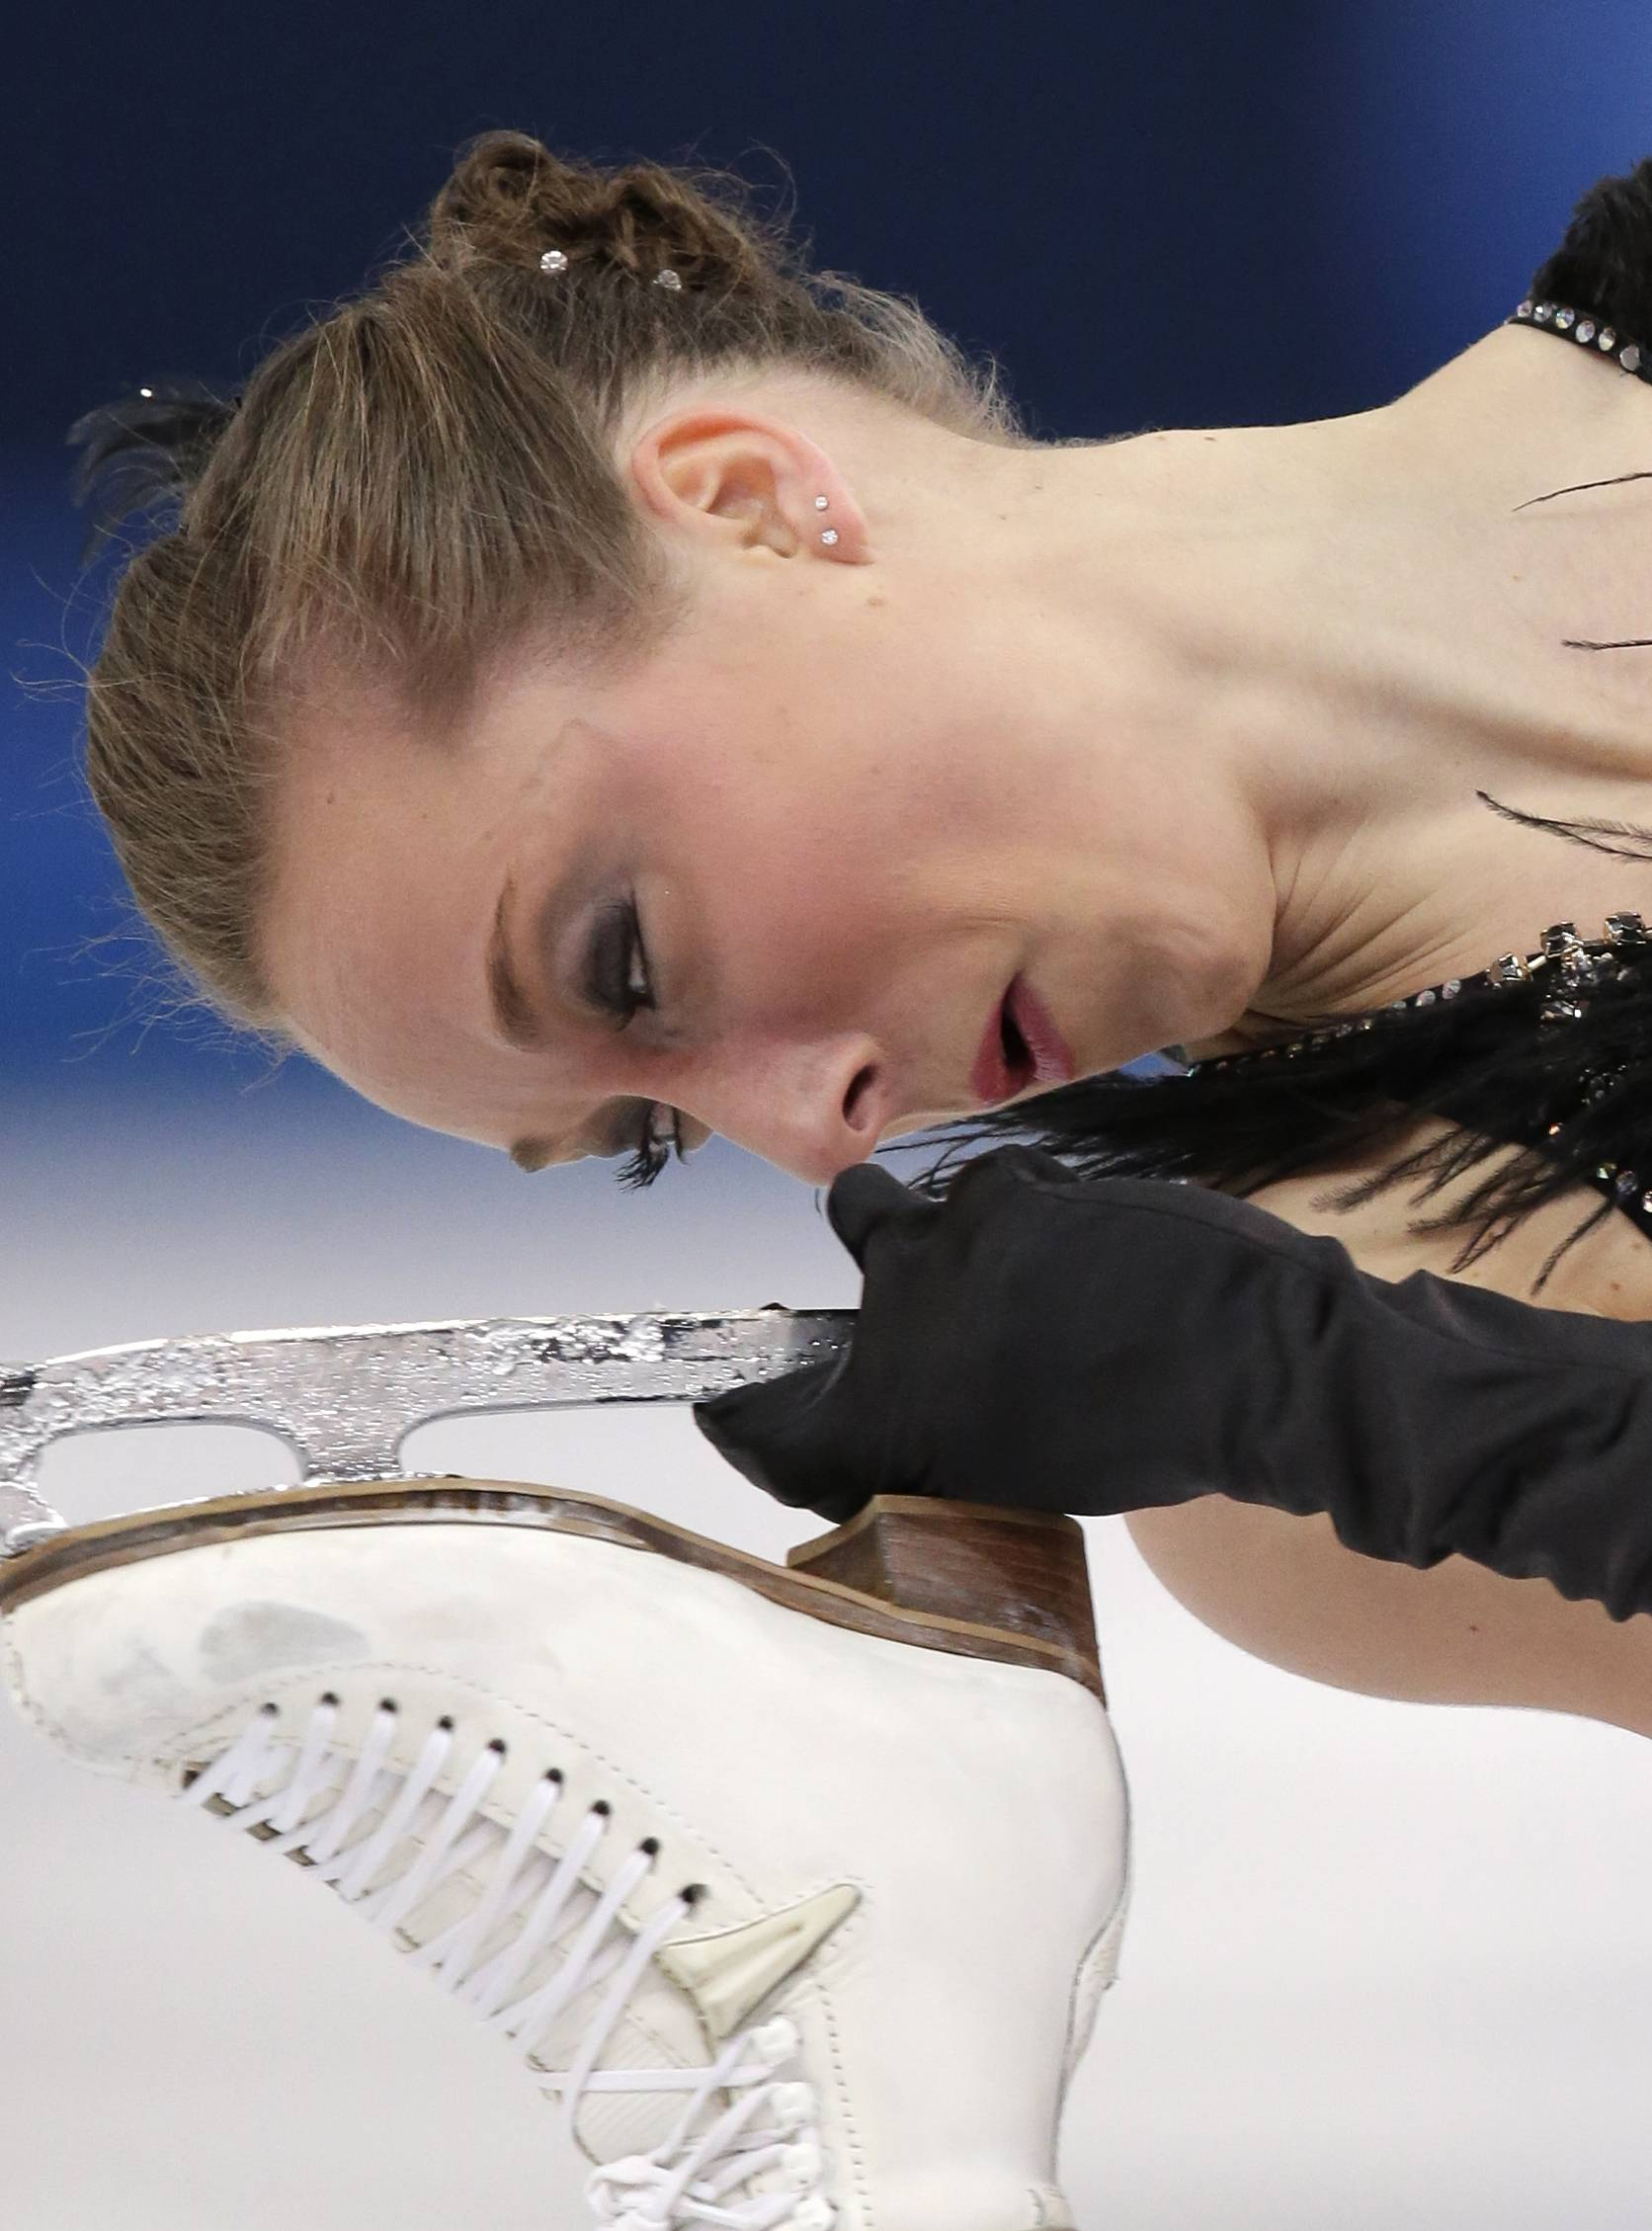 Nathalie Weinzierl of Germany competes in the women's short program figure skating competition.